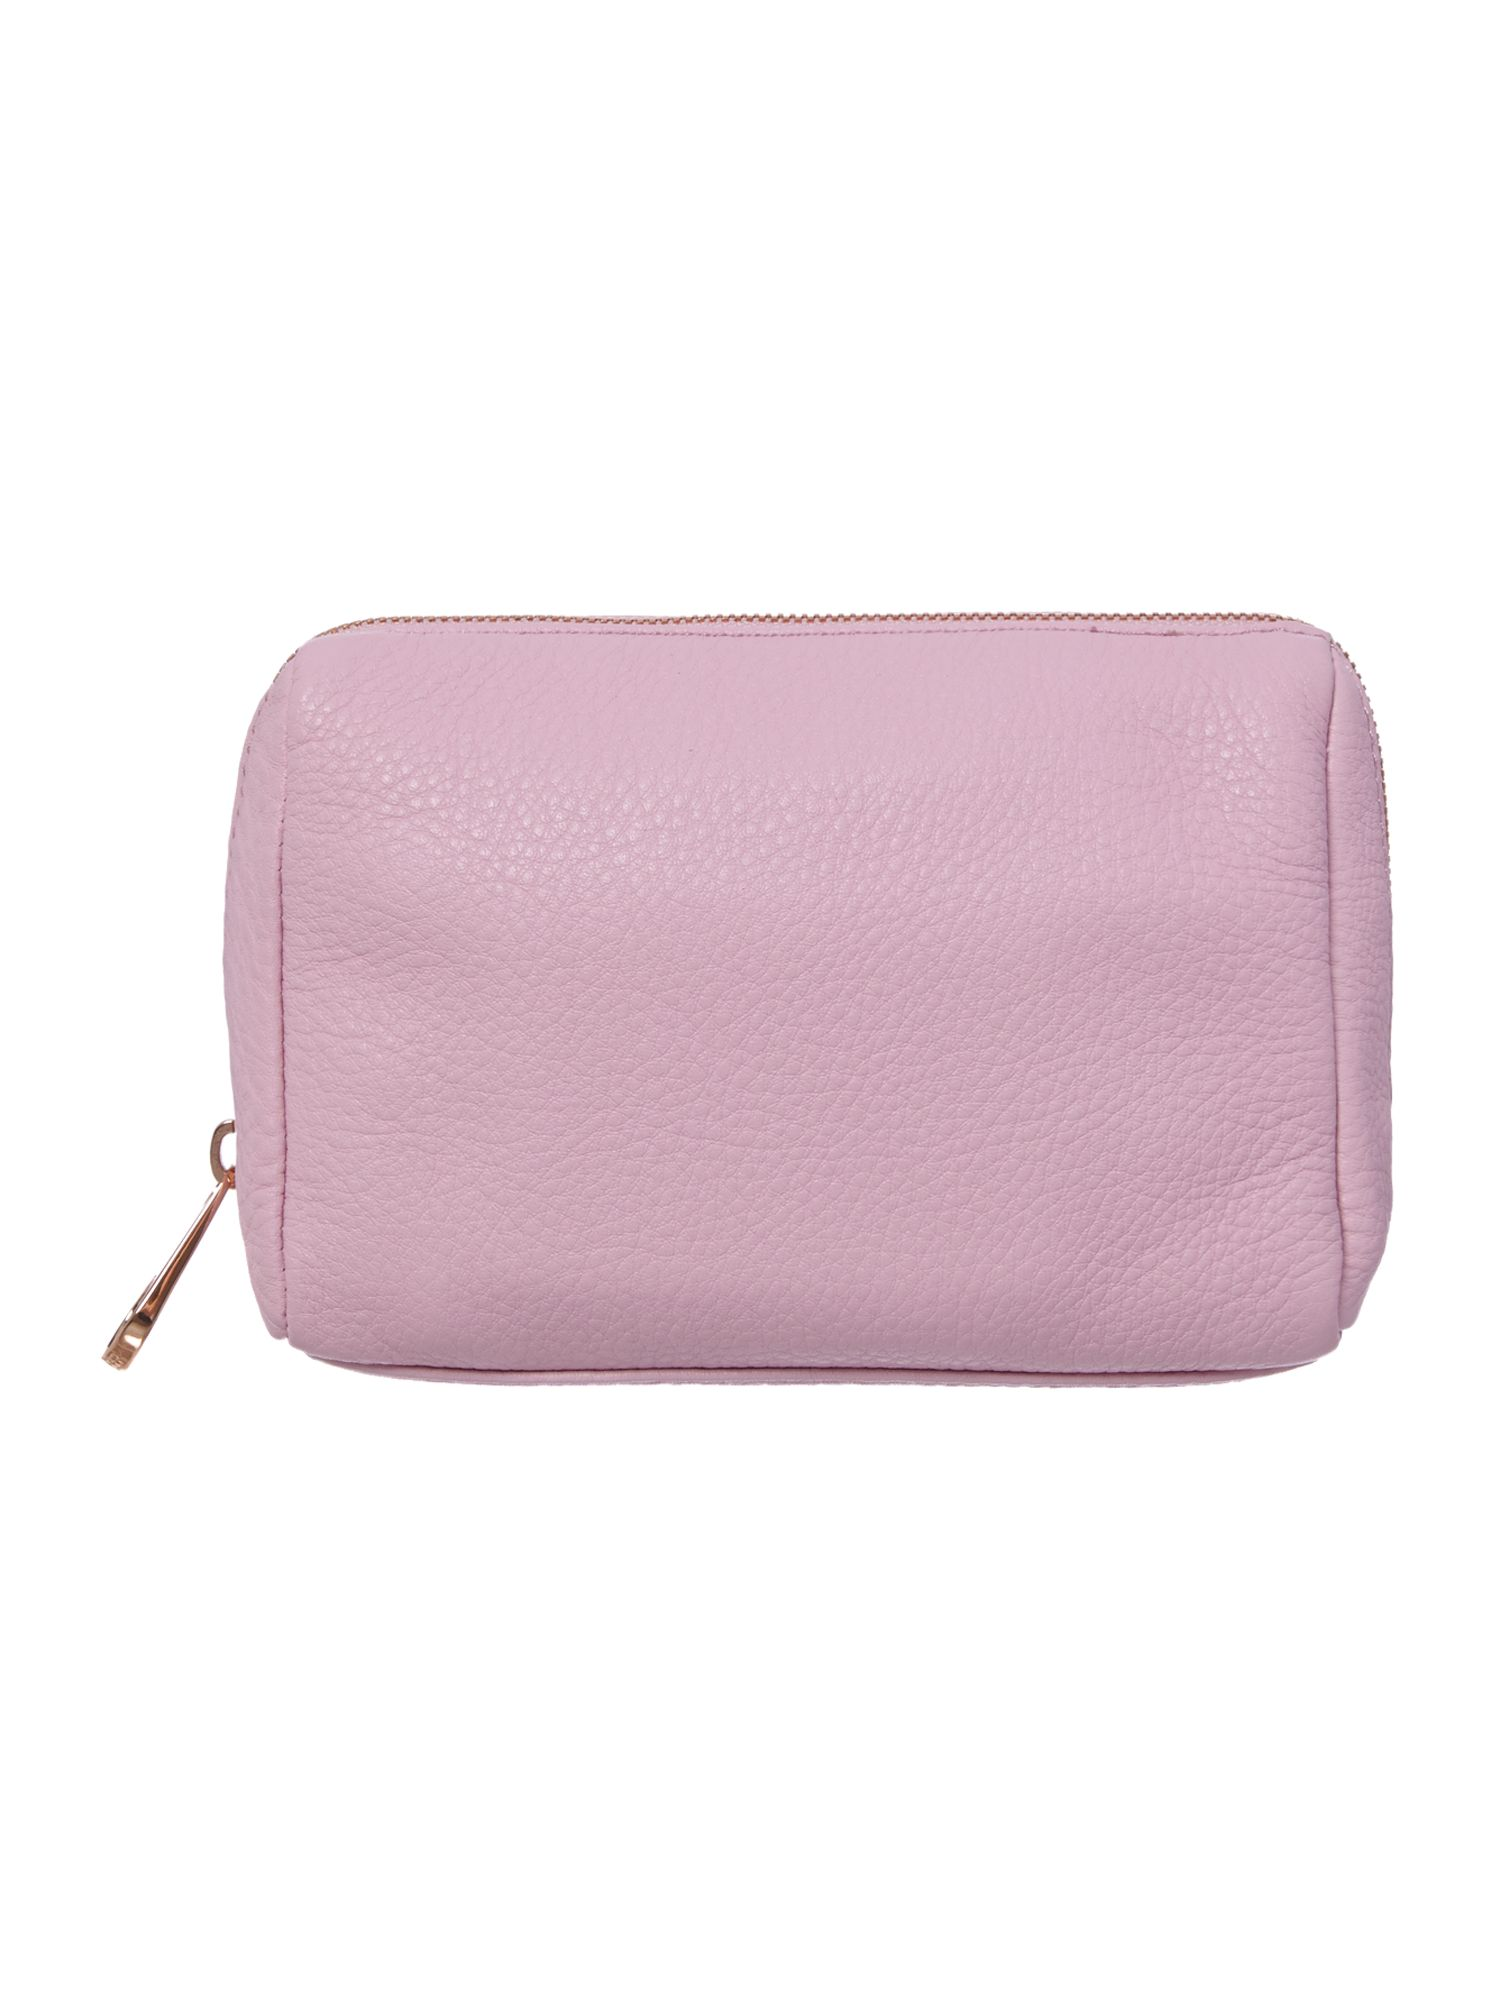 Pink leather costmetic bag